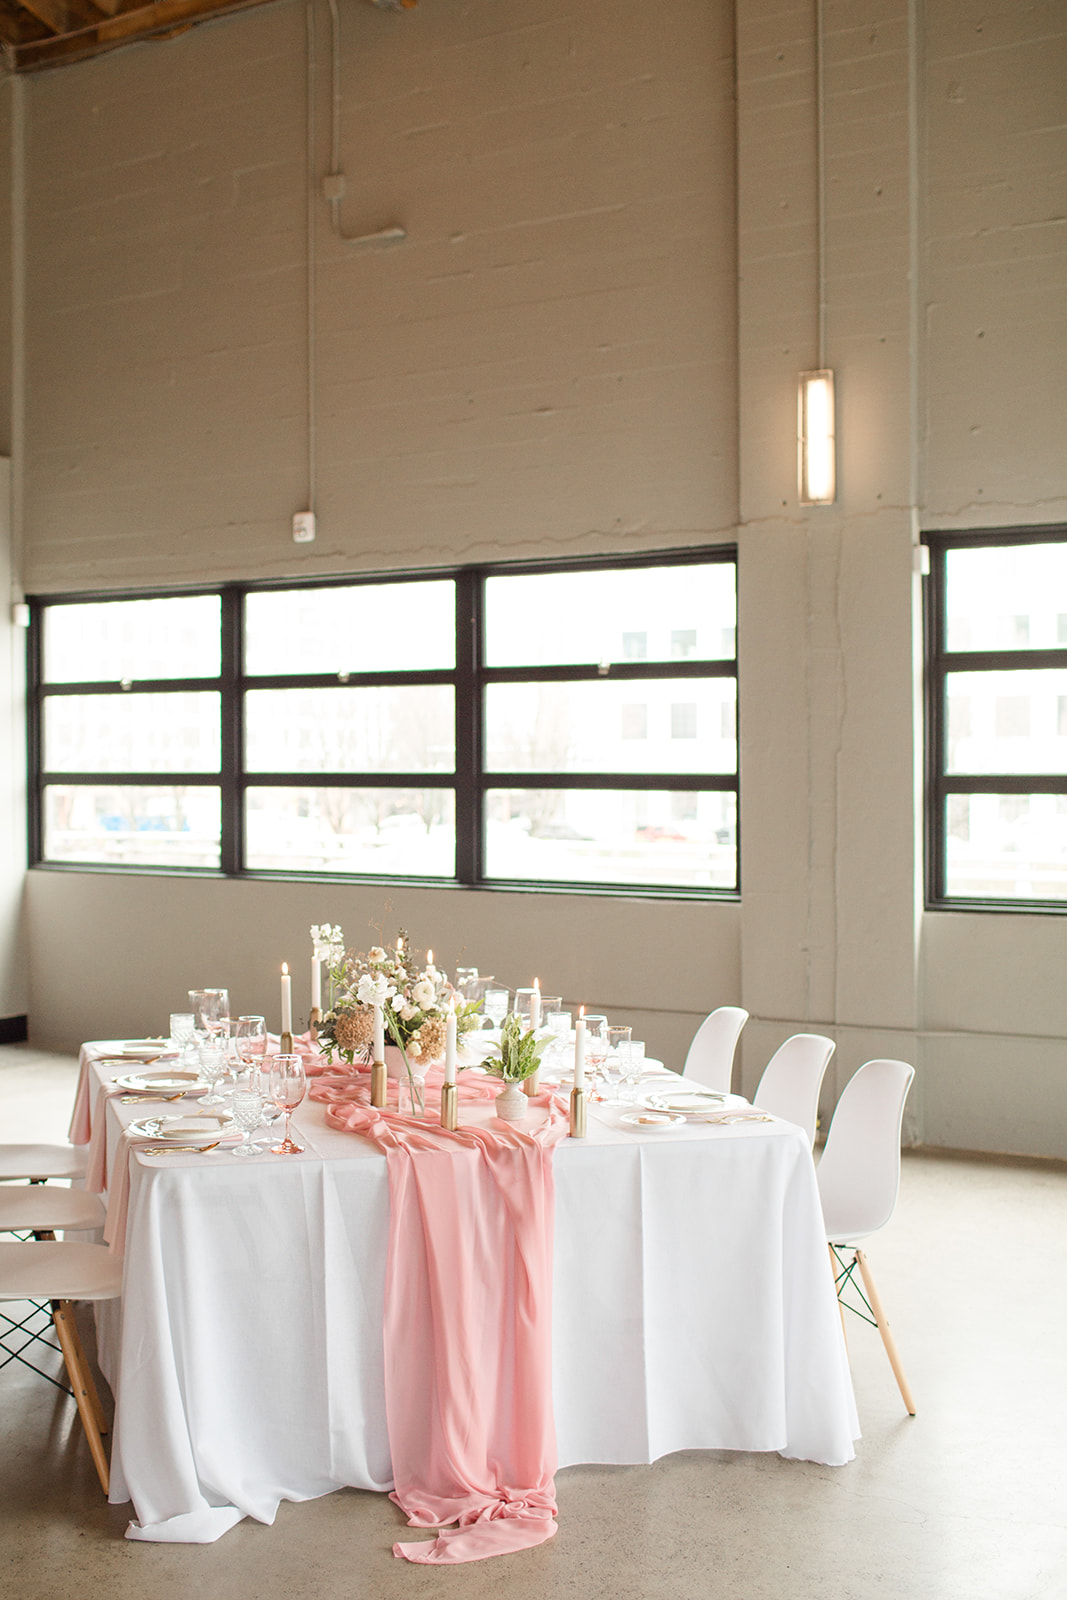 Romantic and poised wedding table. Photography: Kelby Maria Photography. Planning: Peachy Keen Coordination